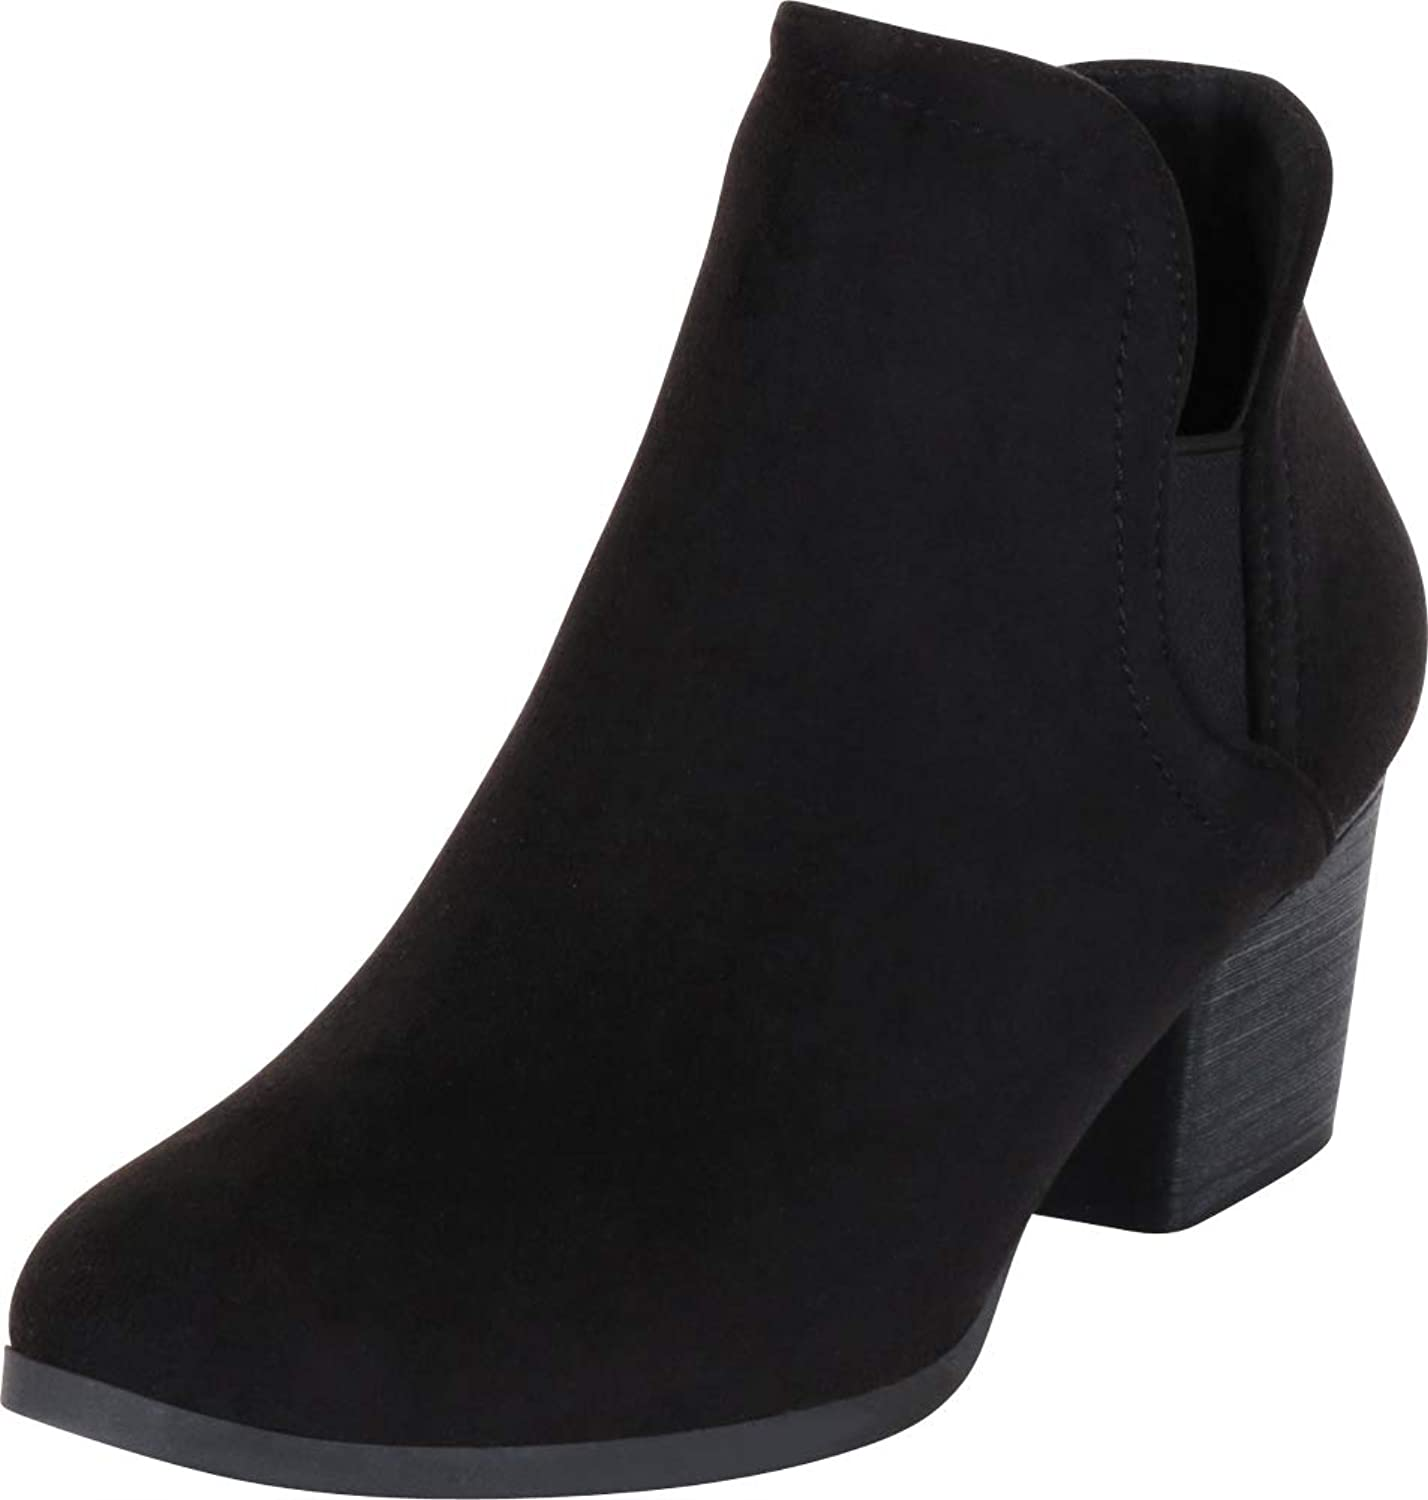 Cambridge Select Women's Western Side Cutout Chunky Stacked Heel Stretch Ankle Bootie